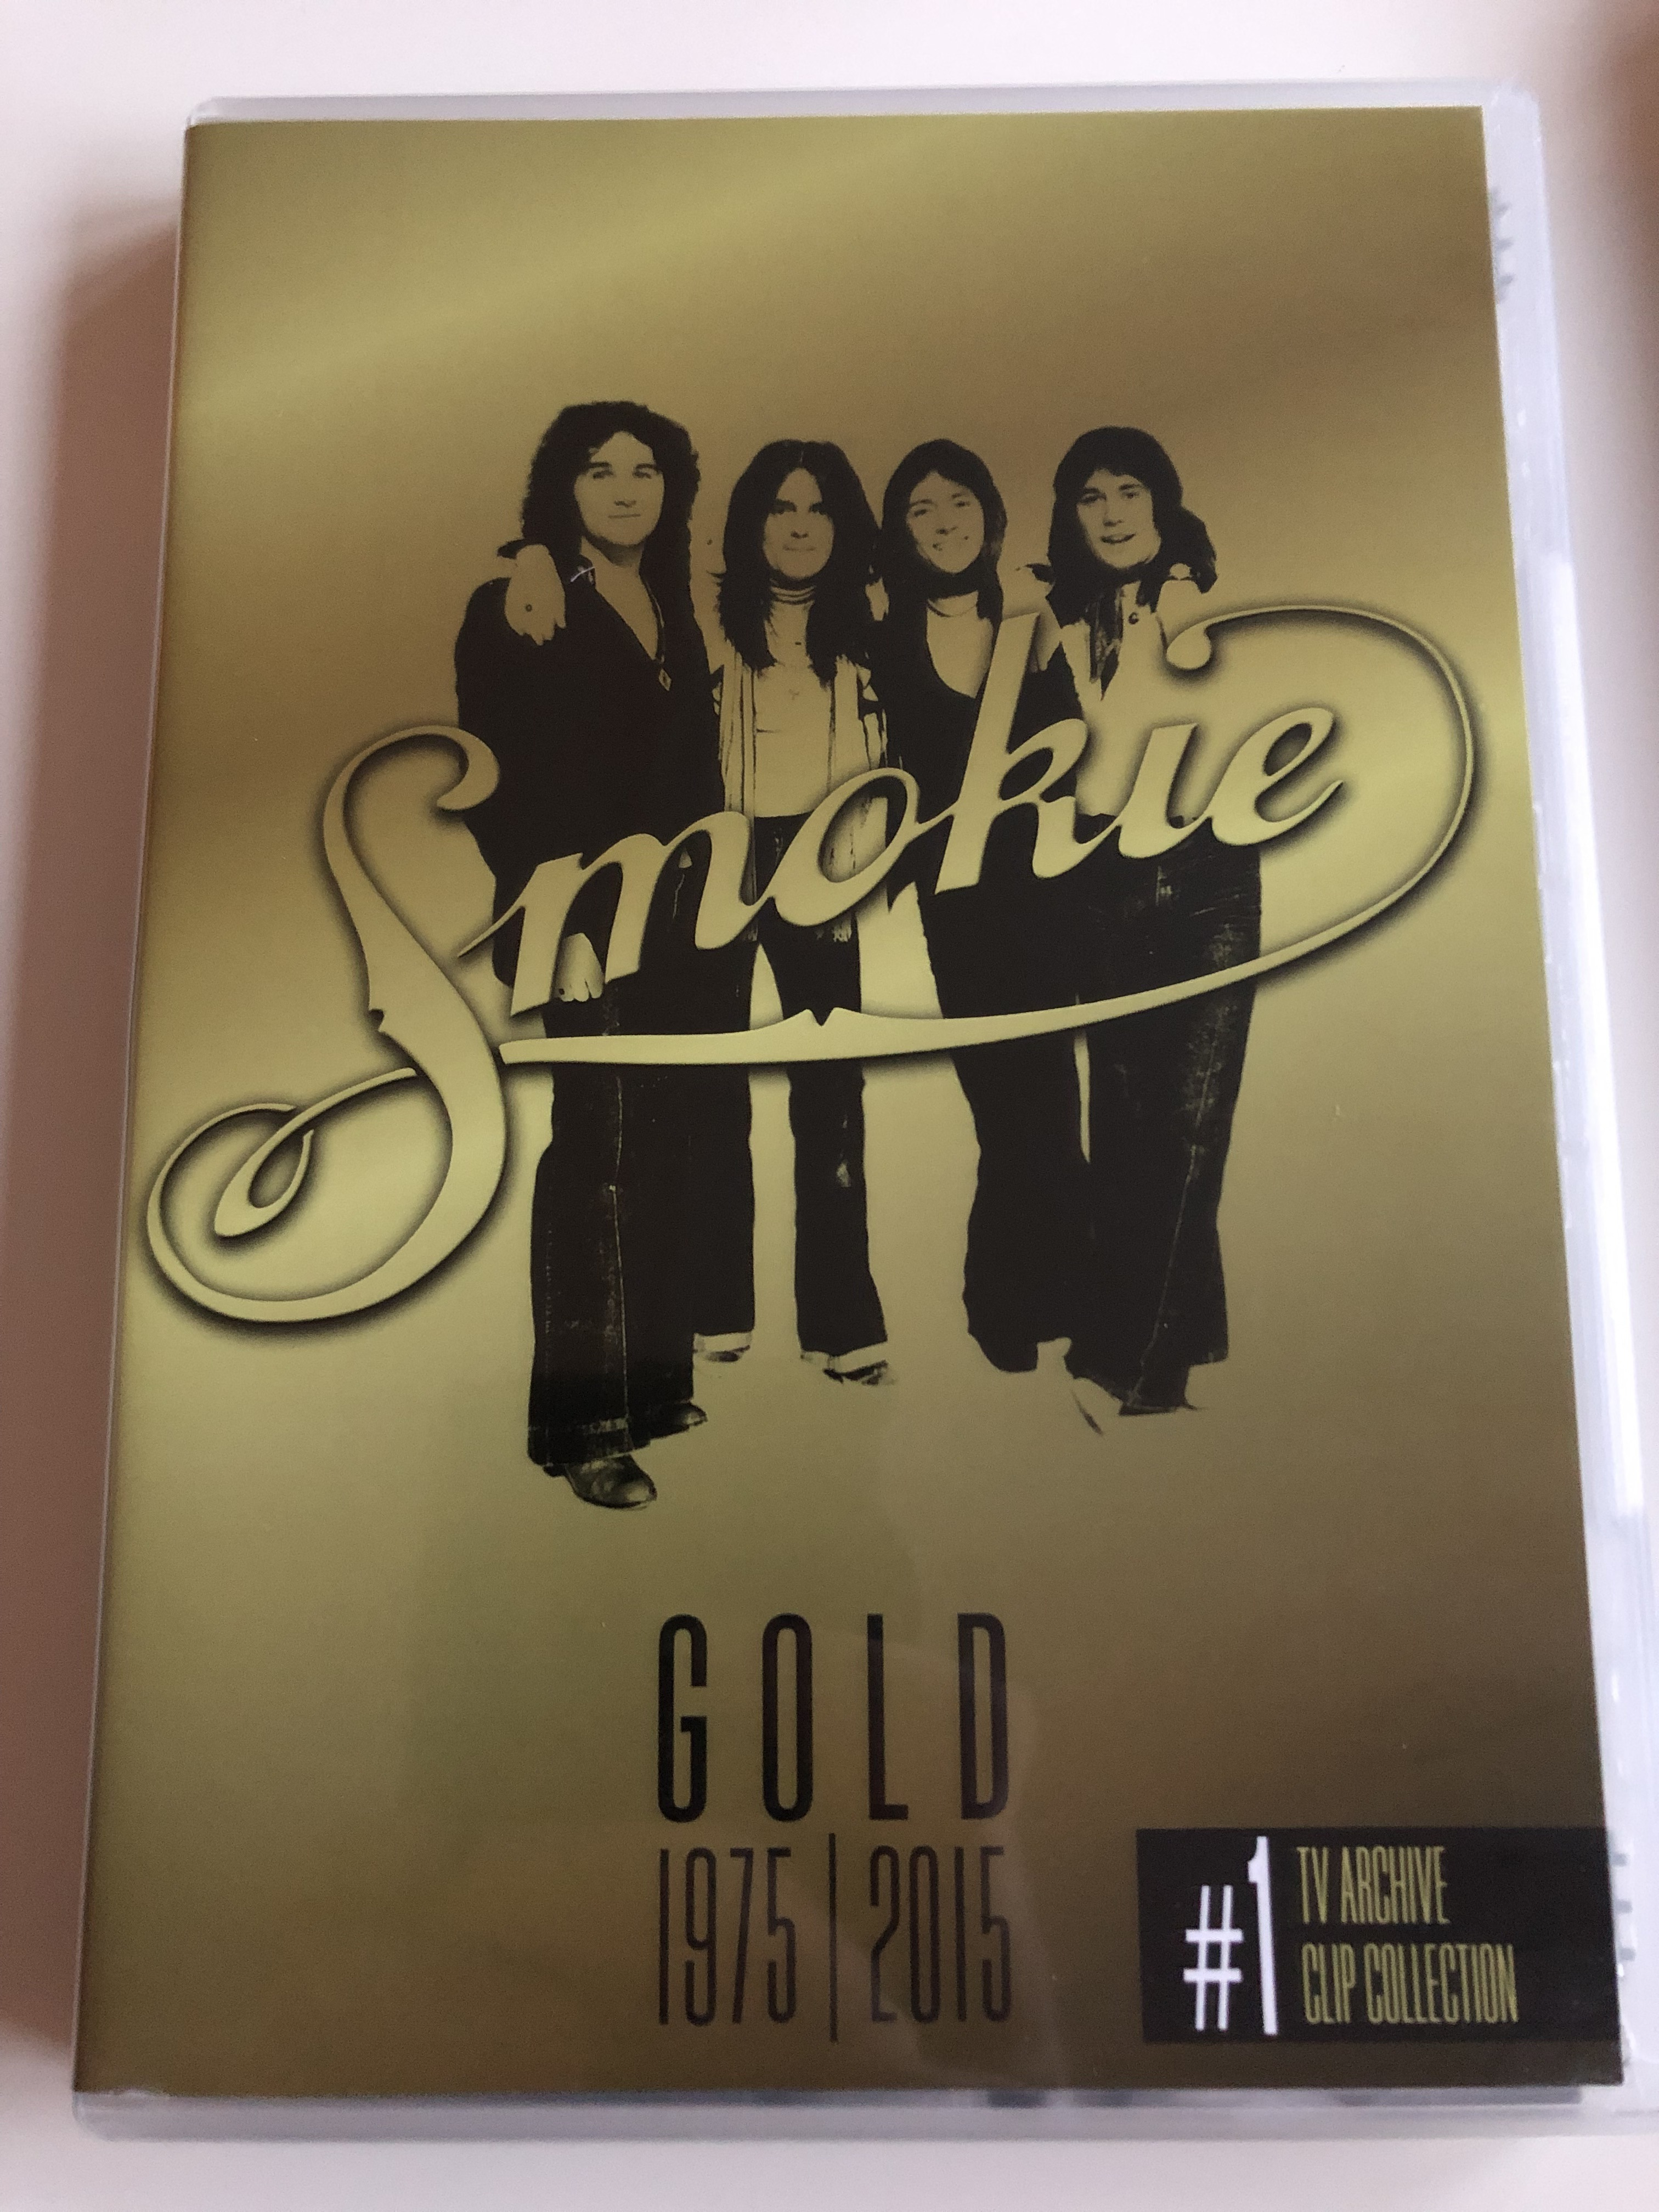 smokie-gold-1975-2015-dvd-1-40th-anniversary-edition-tv-archive-clip-collection-unique-highlights-from-some-of-the-world-s-best-loved-television-entertainment-programmes-sony-music-1-.jpg